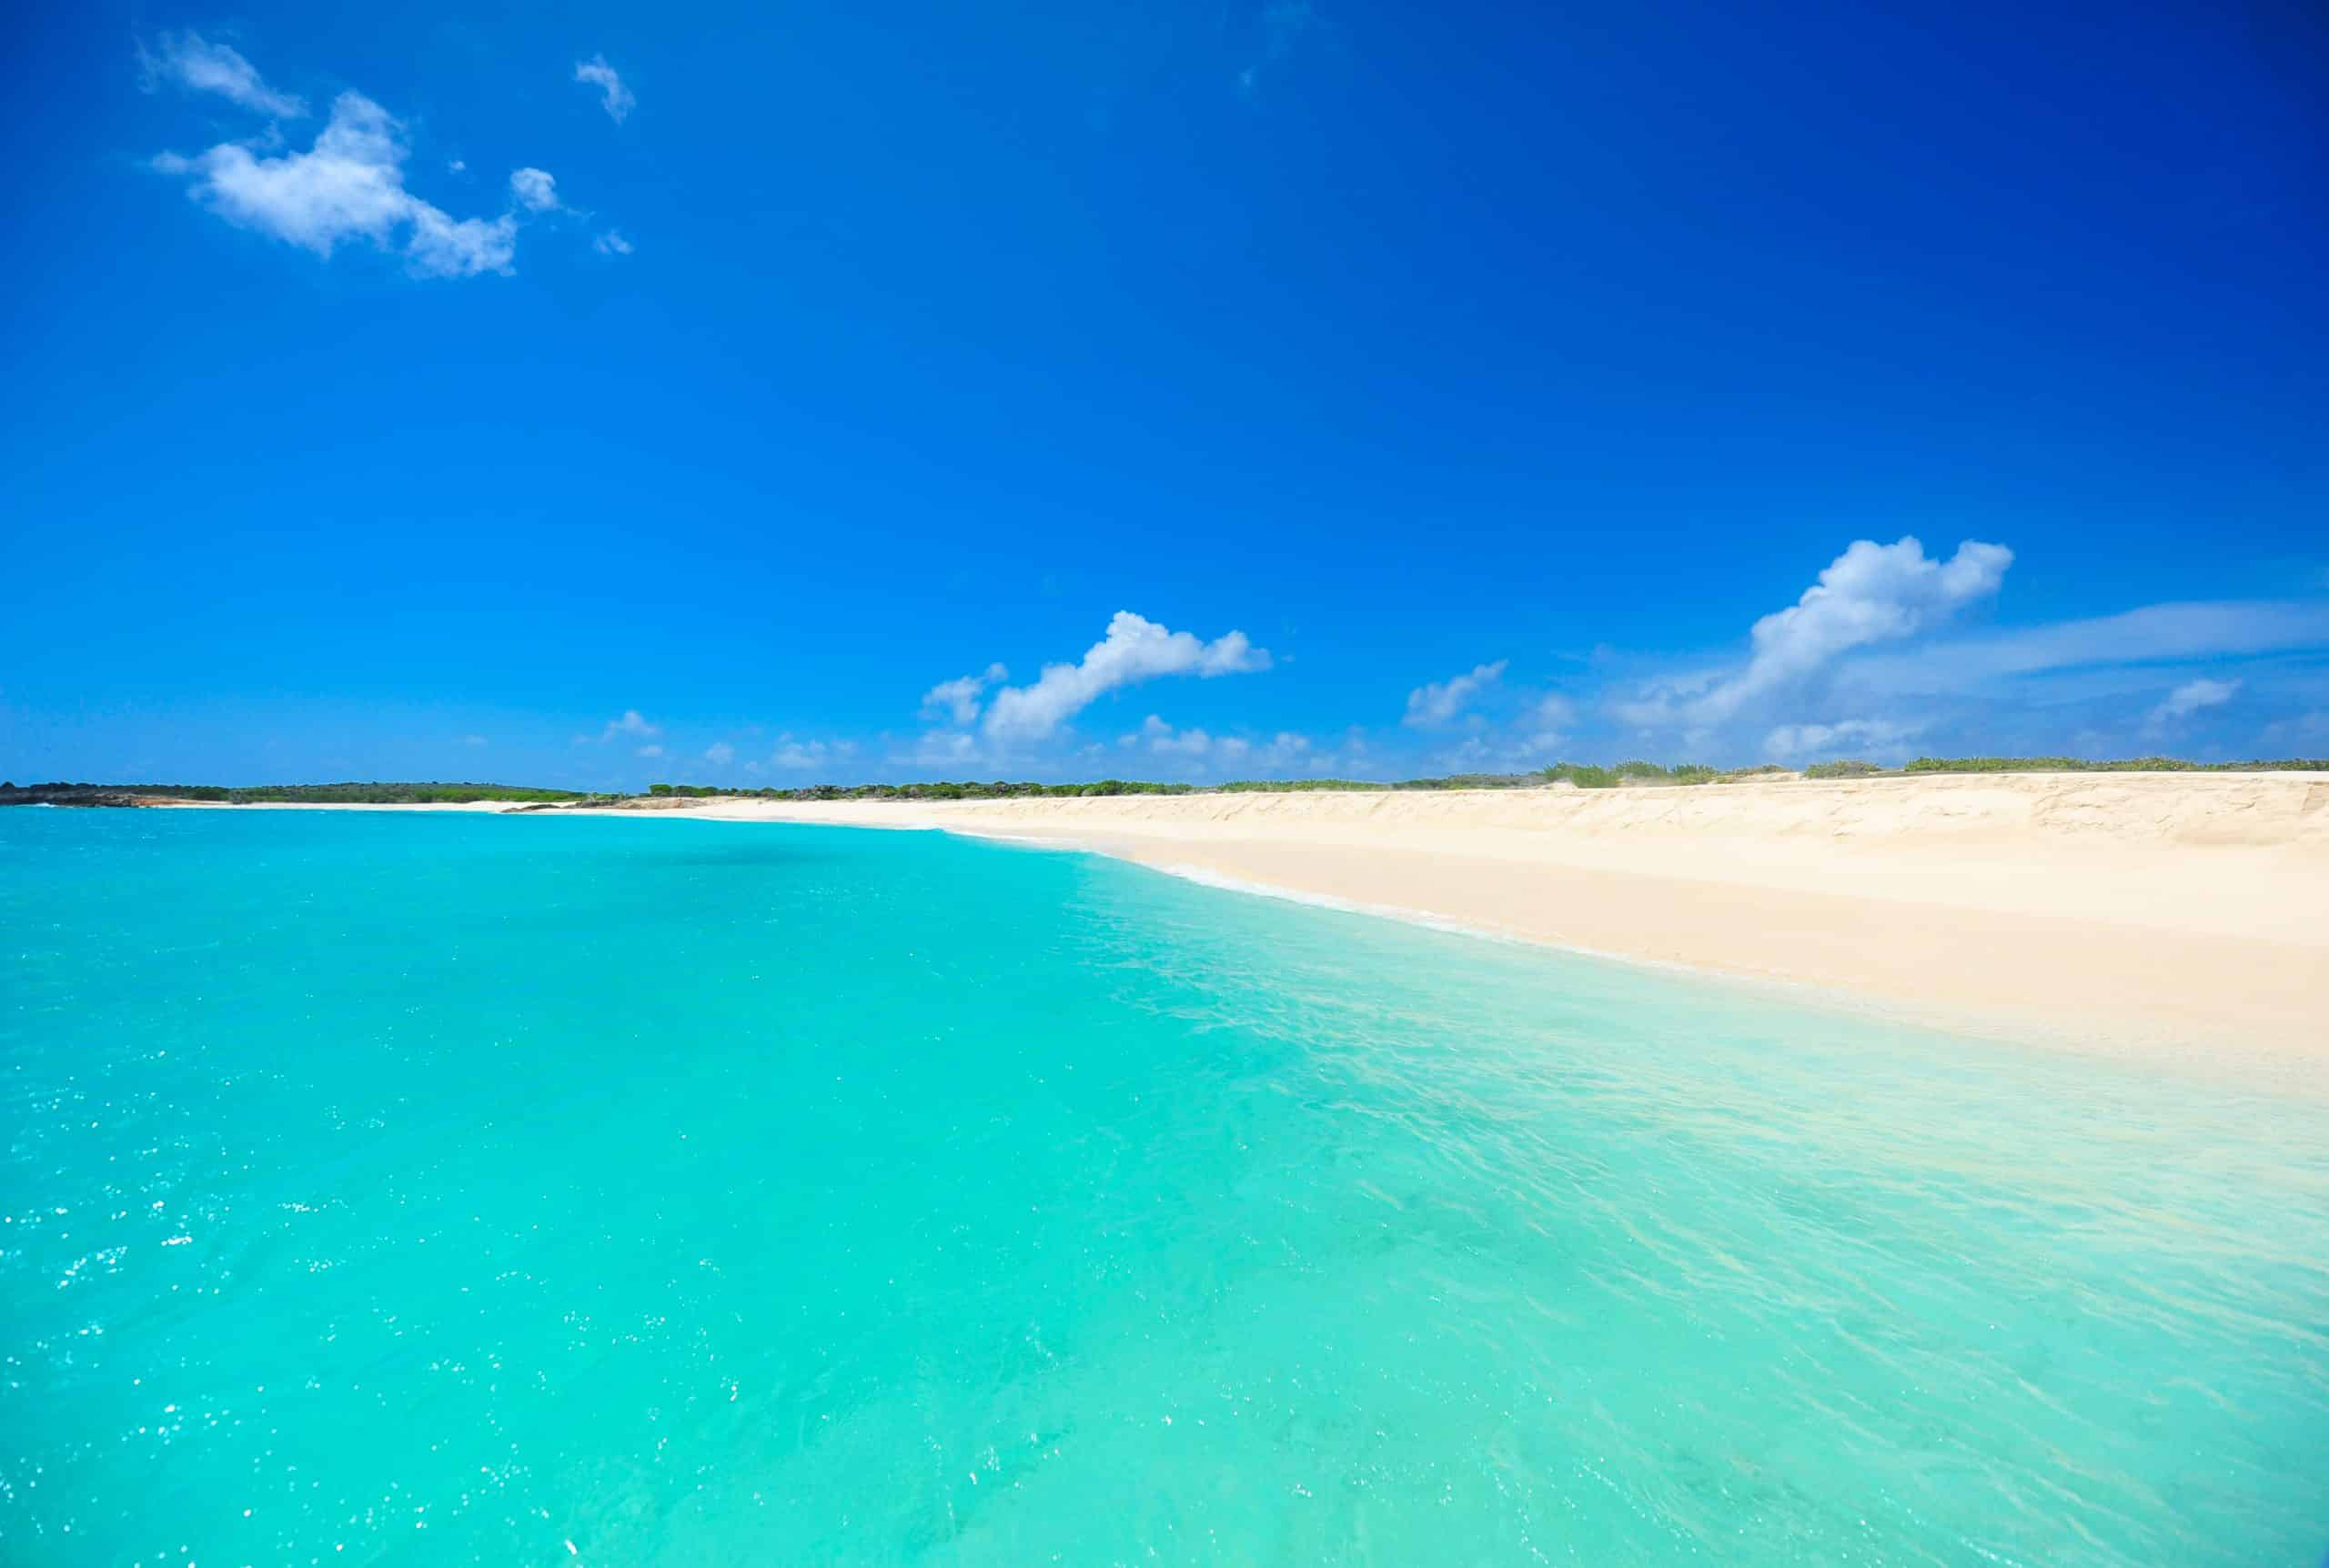 Travel Destination showing beautiful beach with stunning sand and water for miles and almost cloudless sky